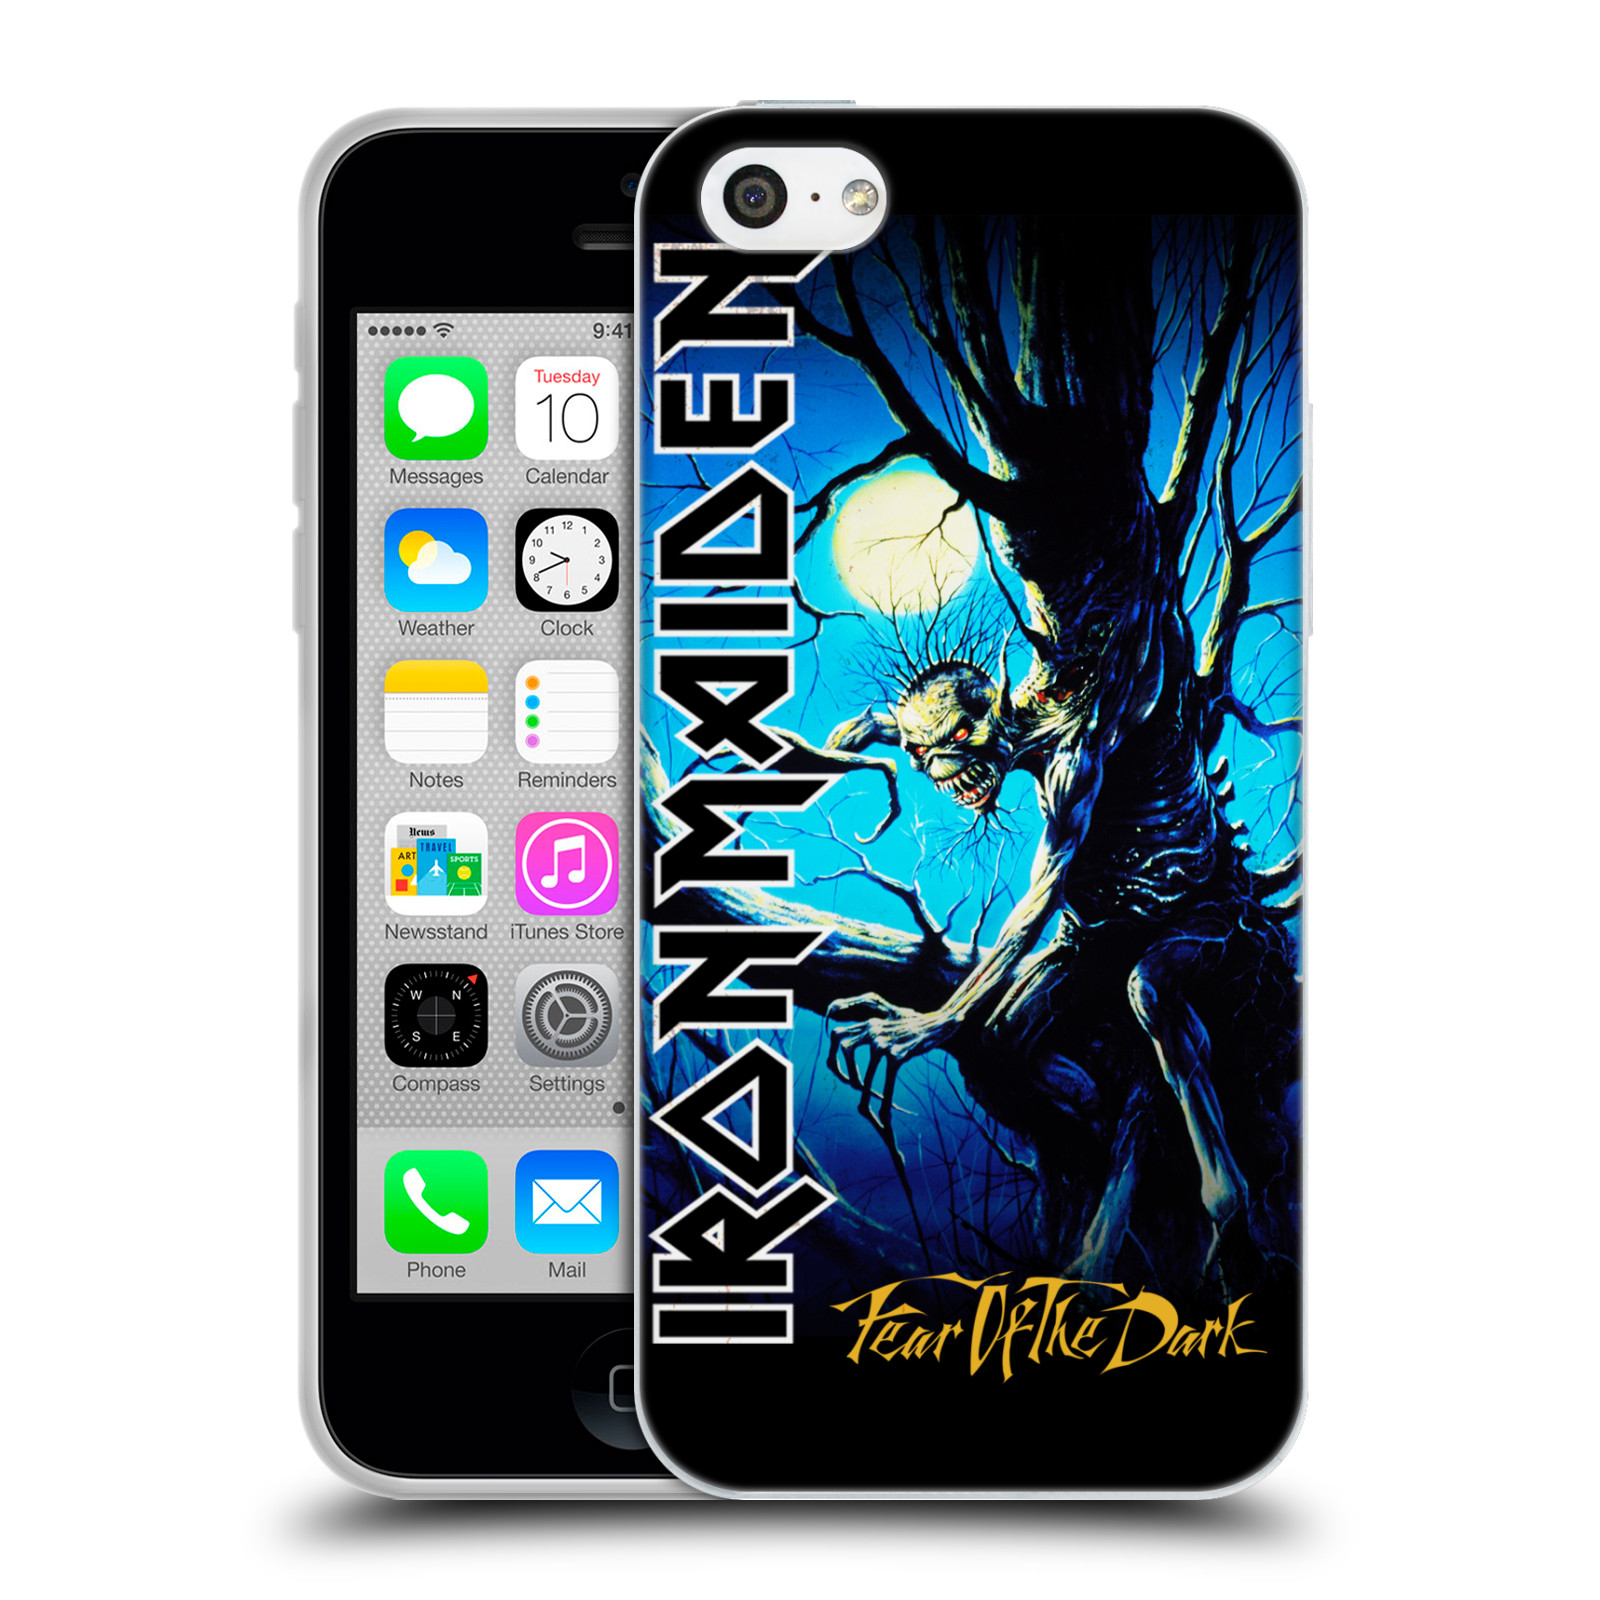 Silikonové pouzdro na mobil Apple iPhone 5C HEAD CASE - Iron Maiden - Fear Of The Dark